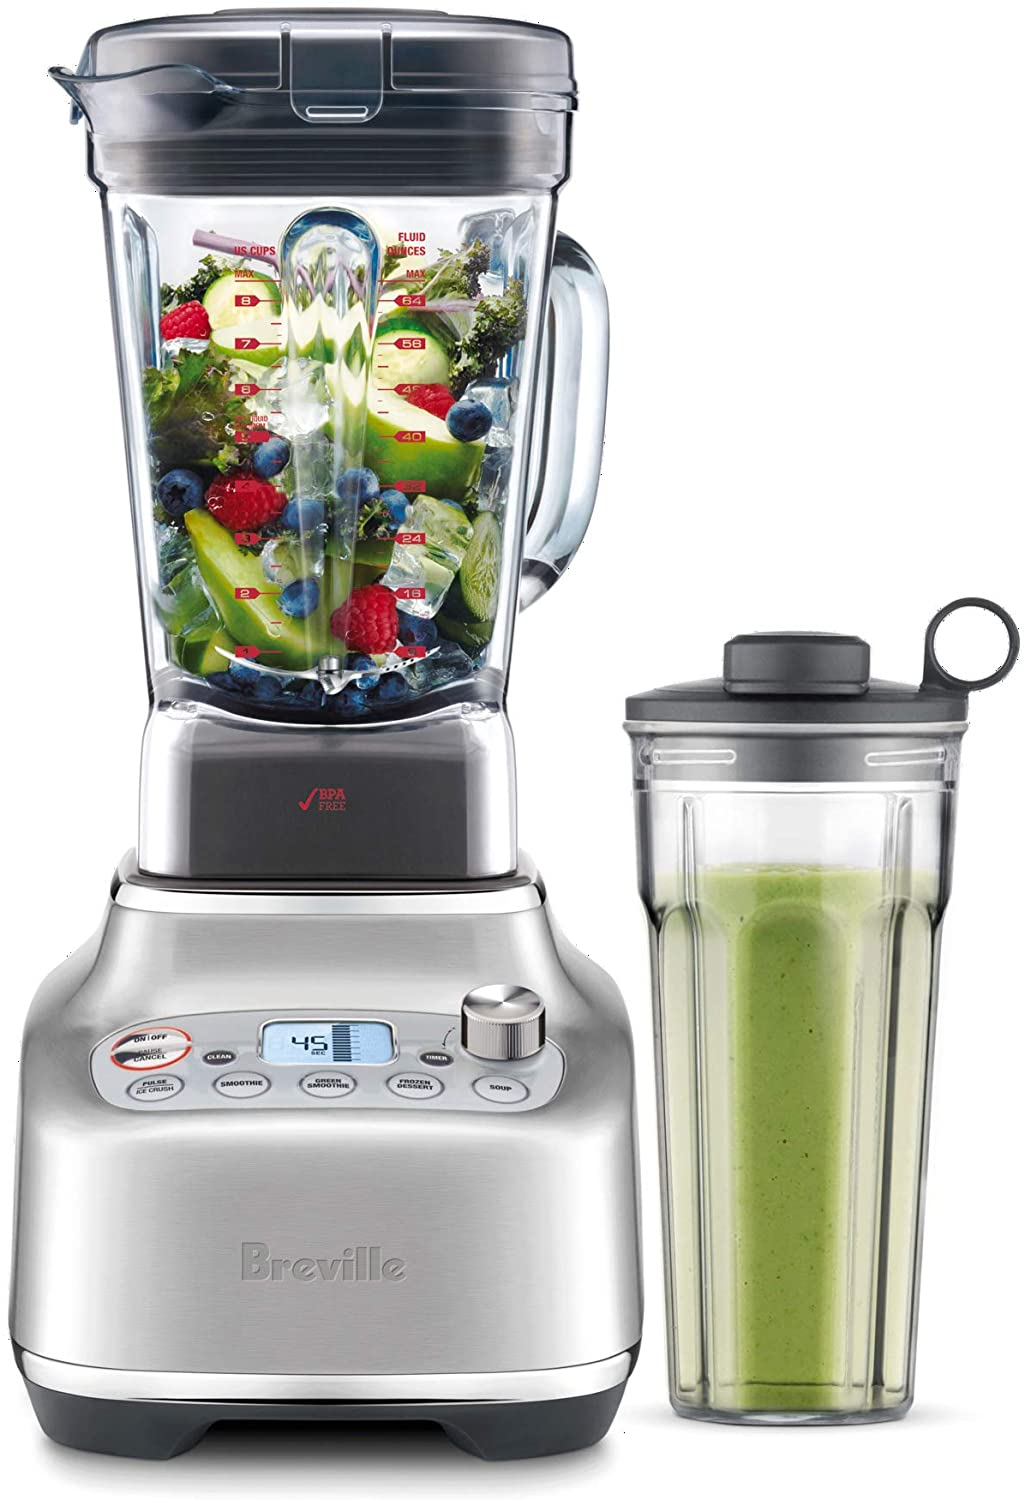 Essential kitchen appliances and gadgets right now: Breville Super Q Blender